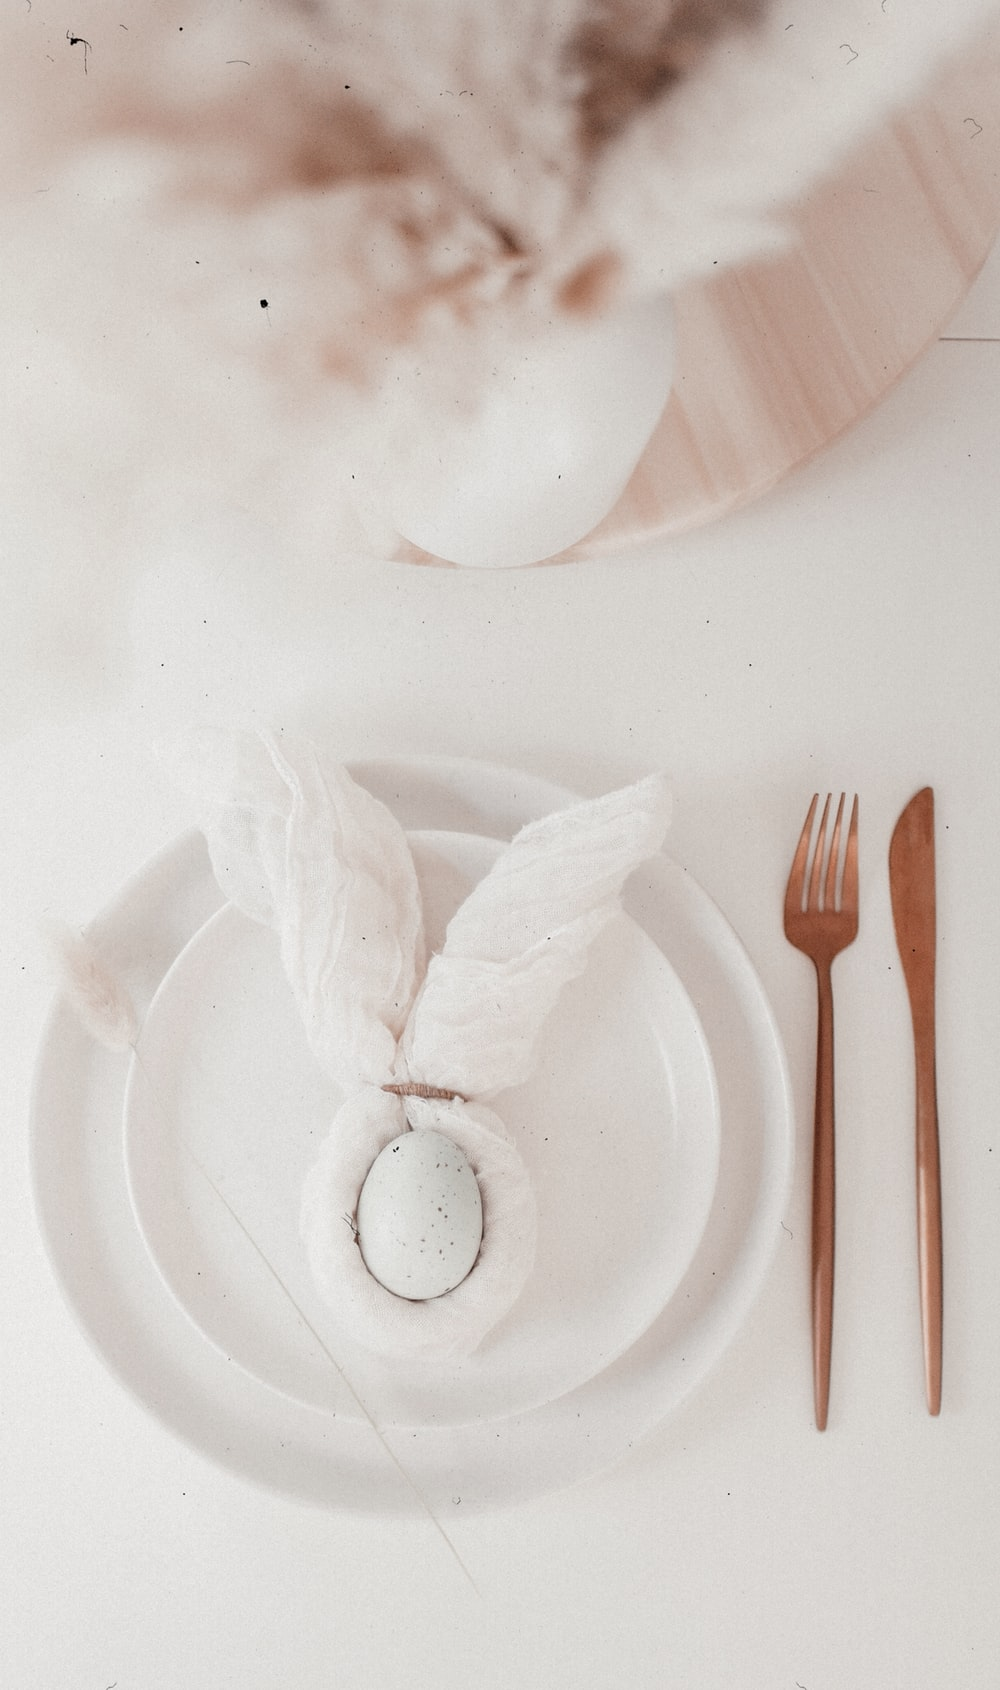 white ceramic plate with fork and knife